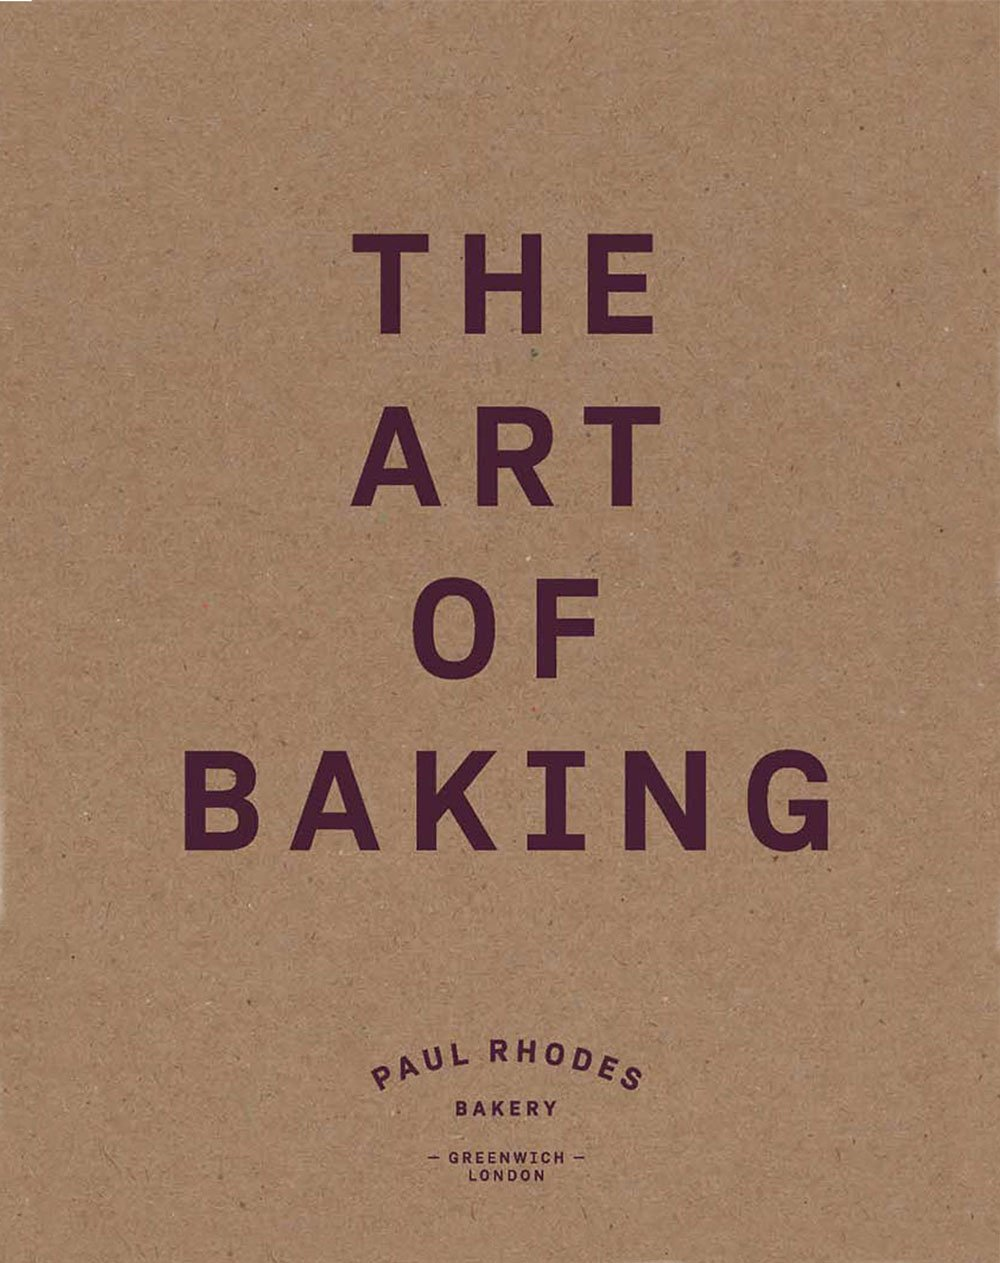 Paul Rhodes wins British Baker of the Year